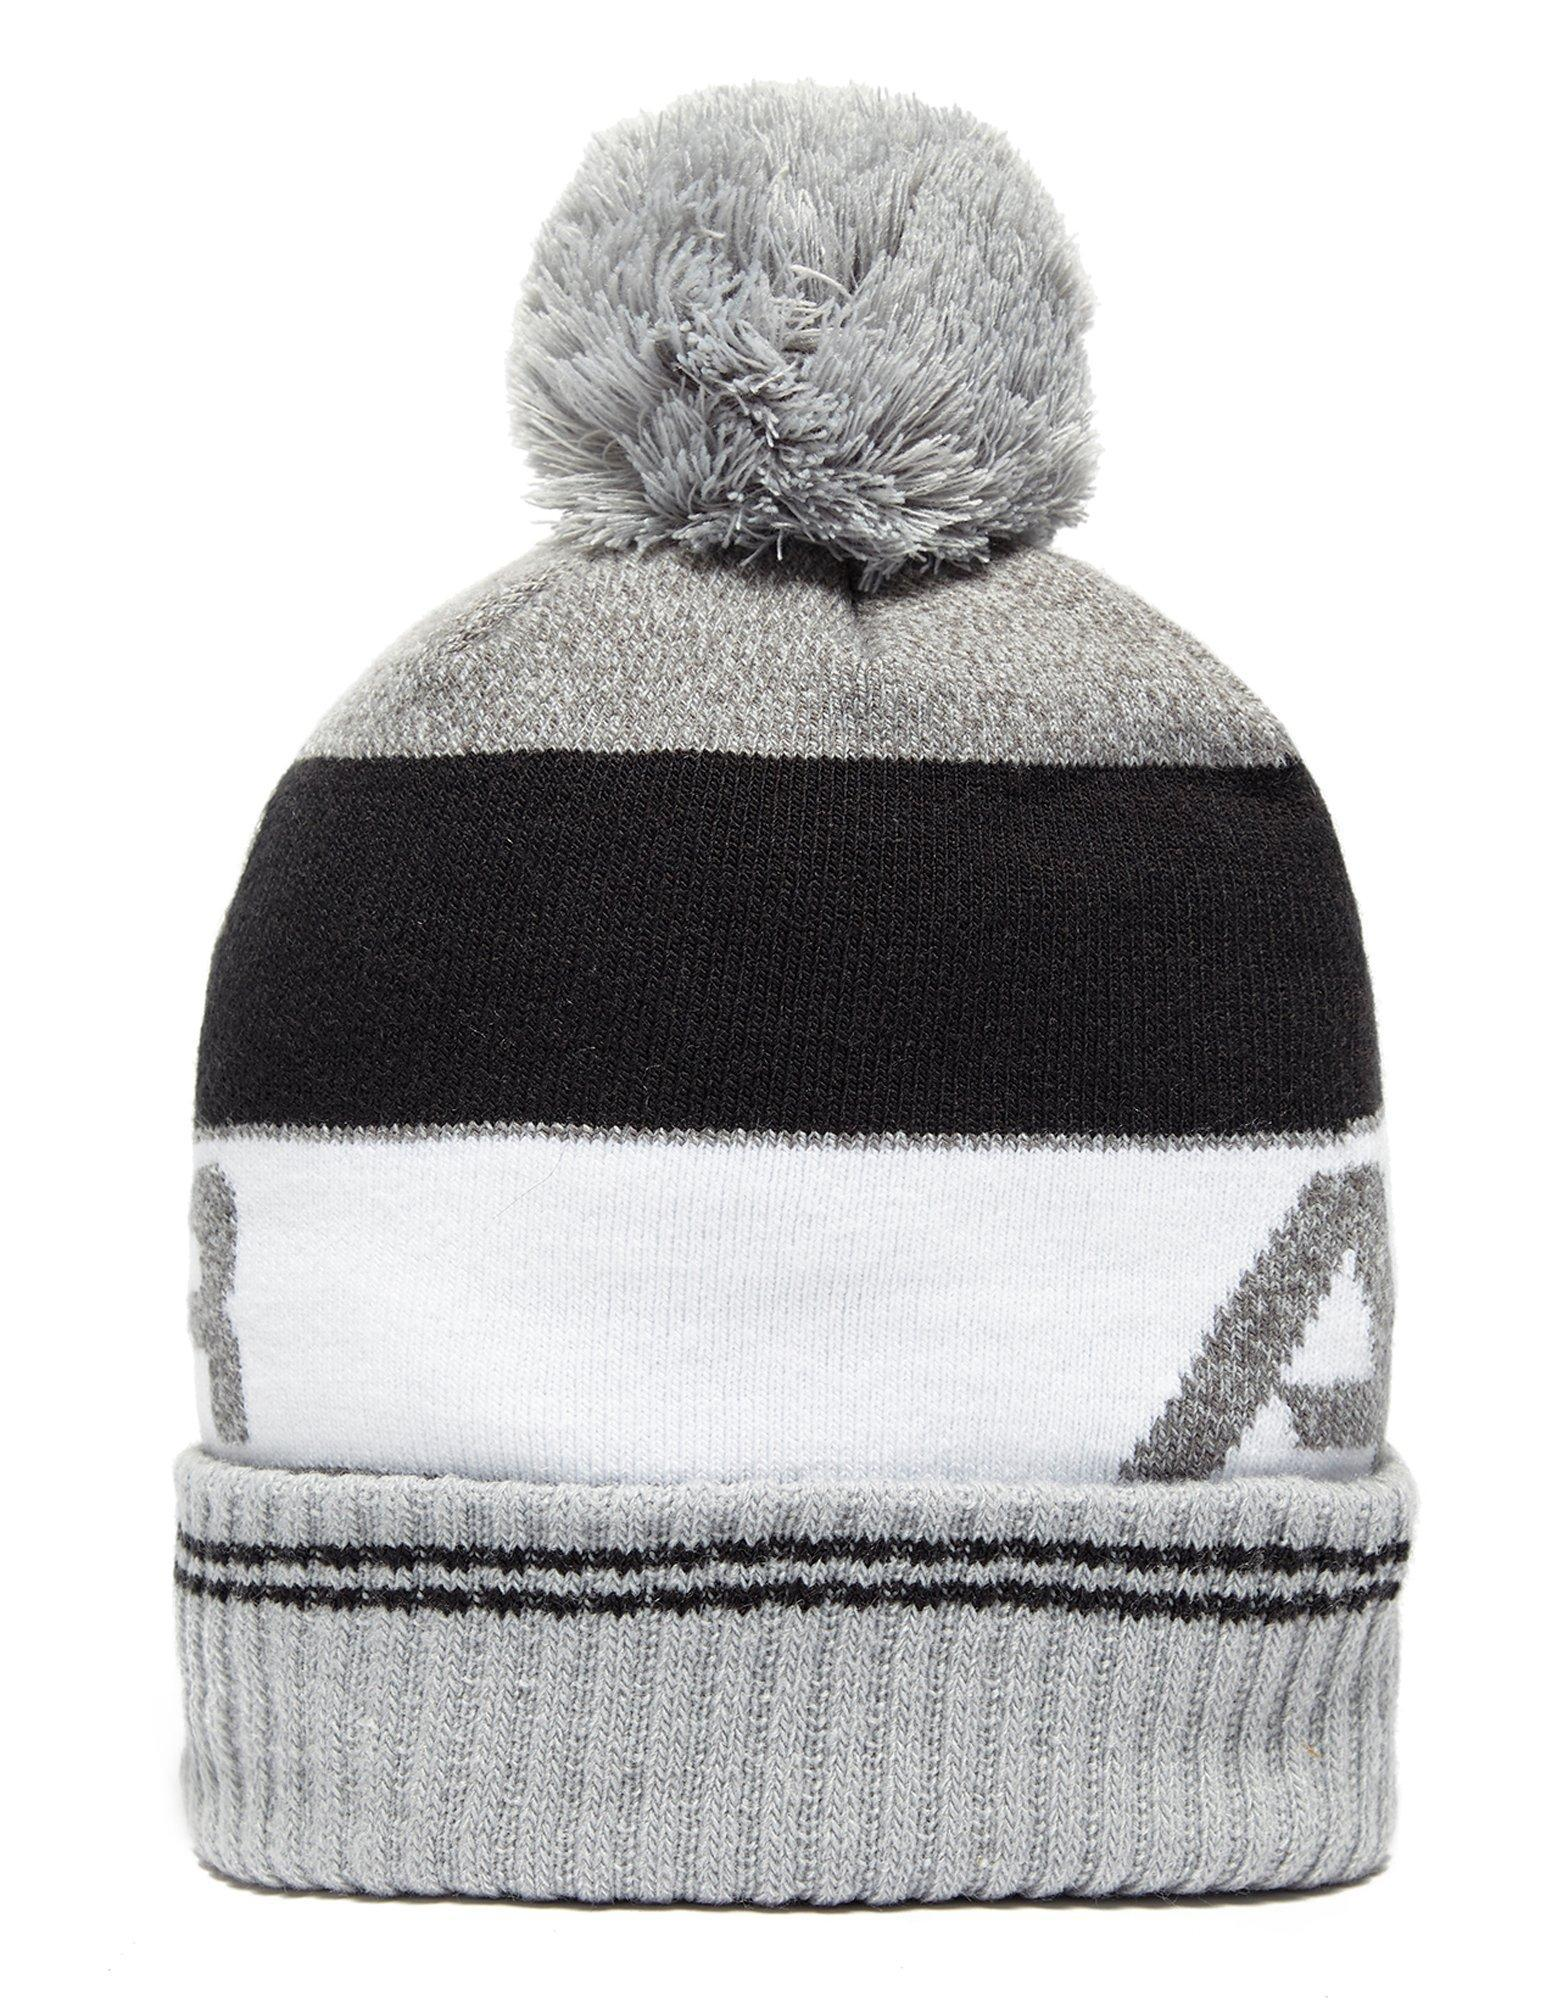 low priced c89bc d11dd Lyst - Under Armour Retro Pom 2.0 Beanie Hat in Gray for Men